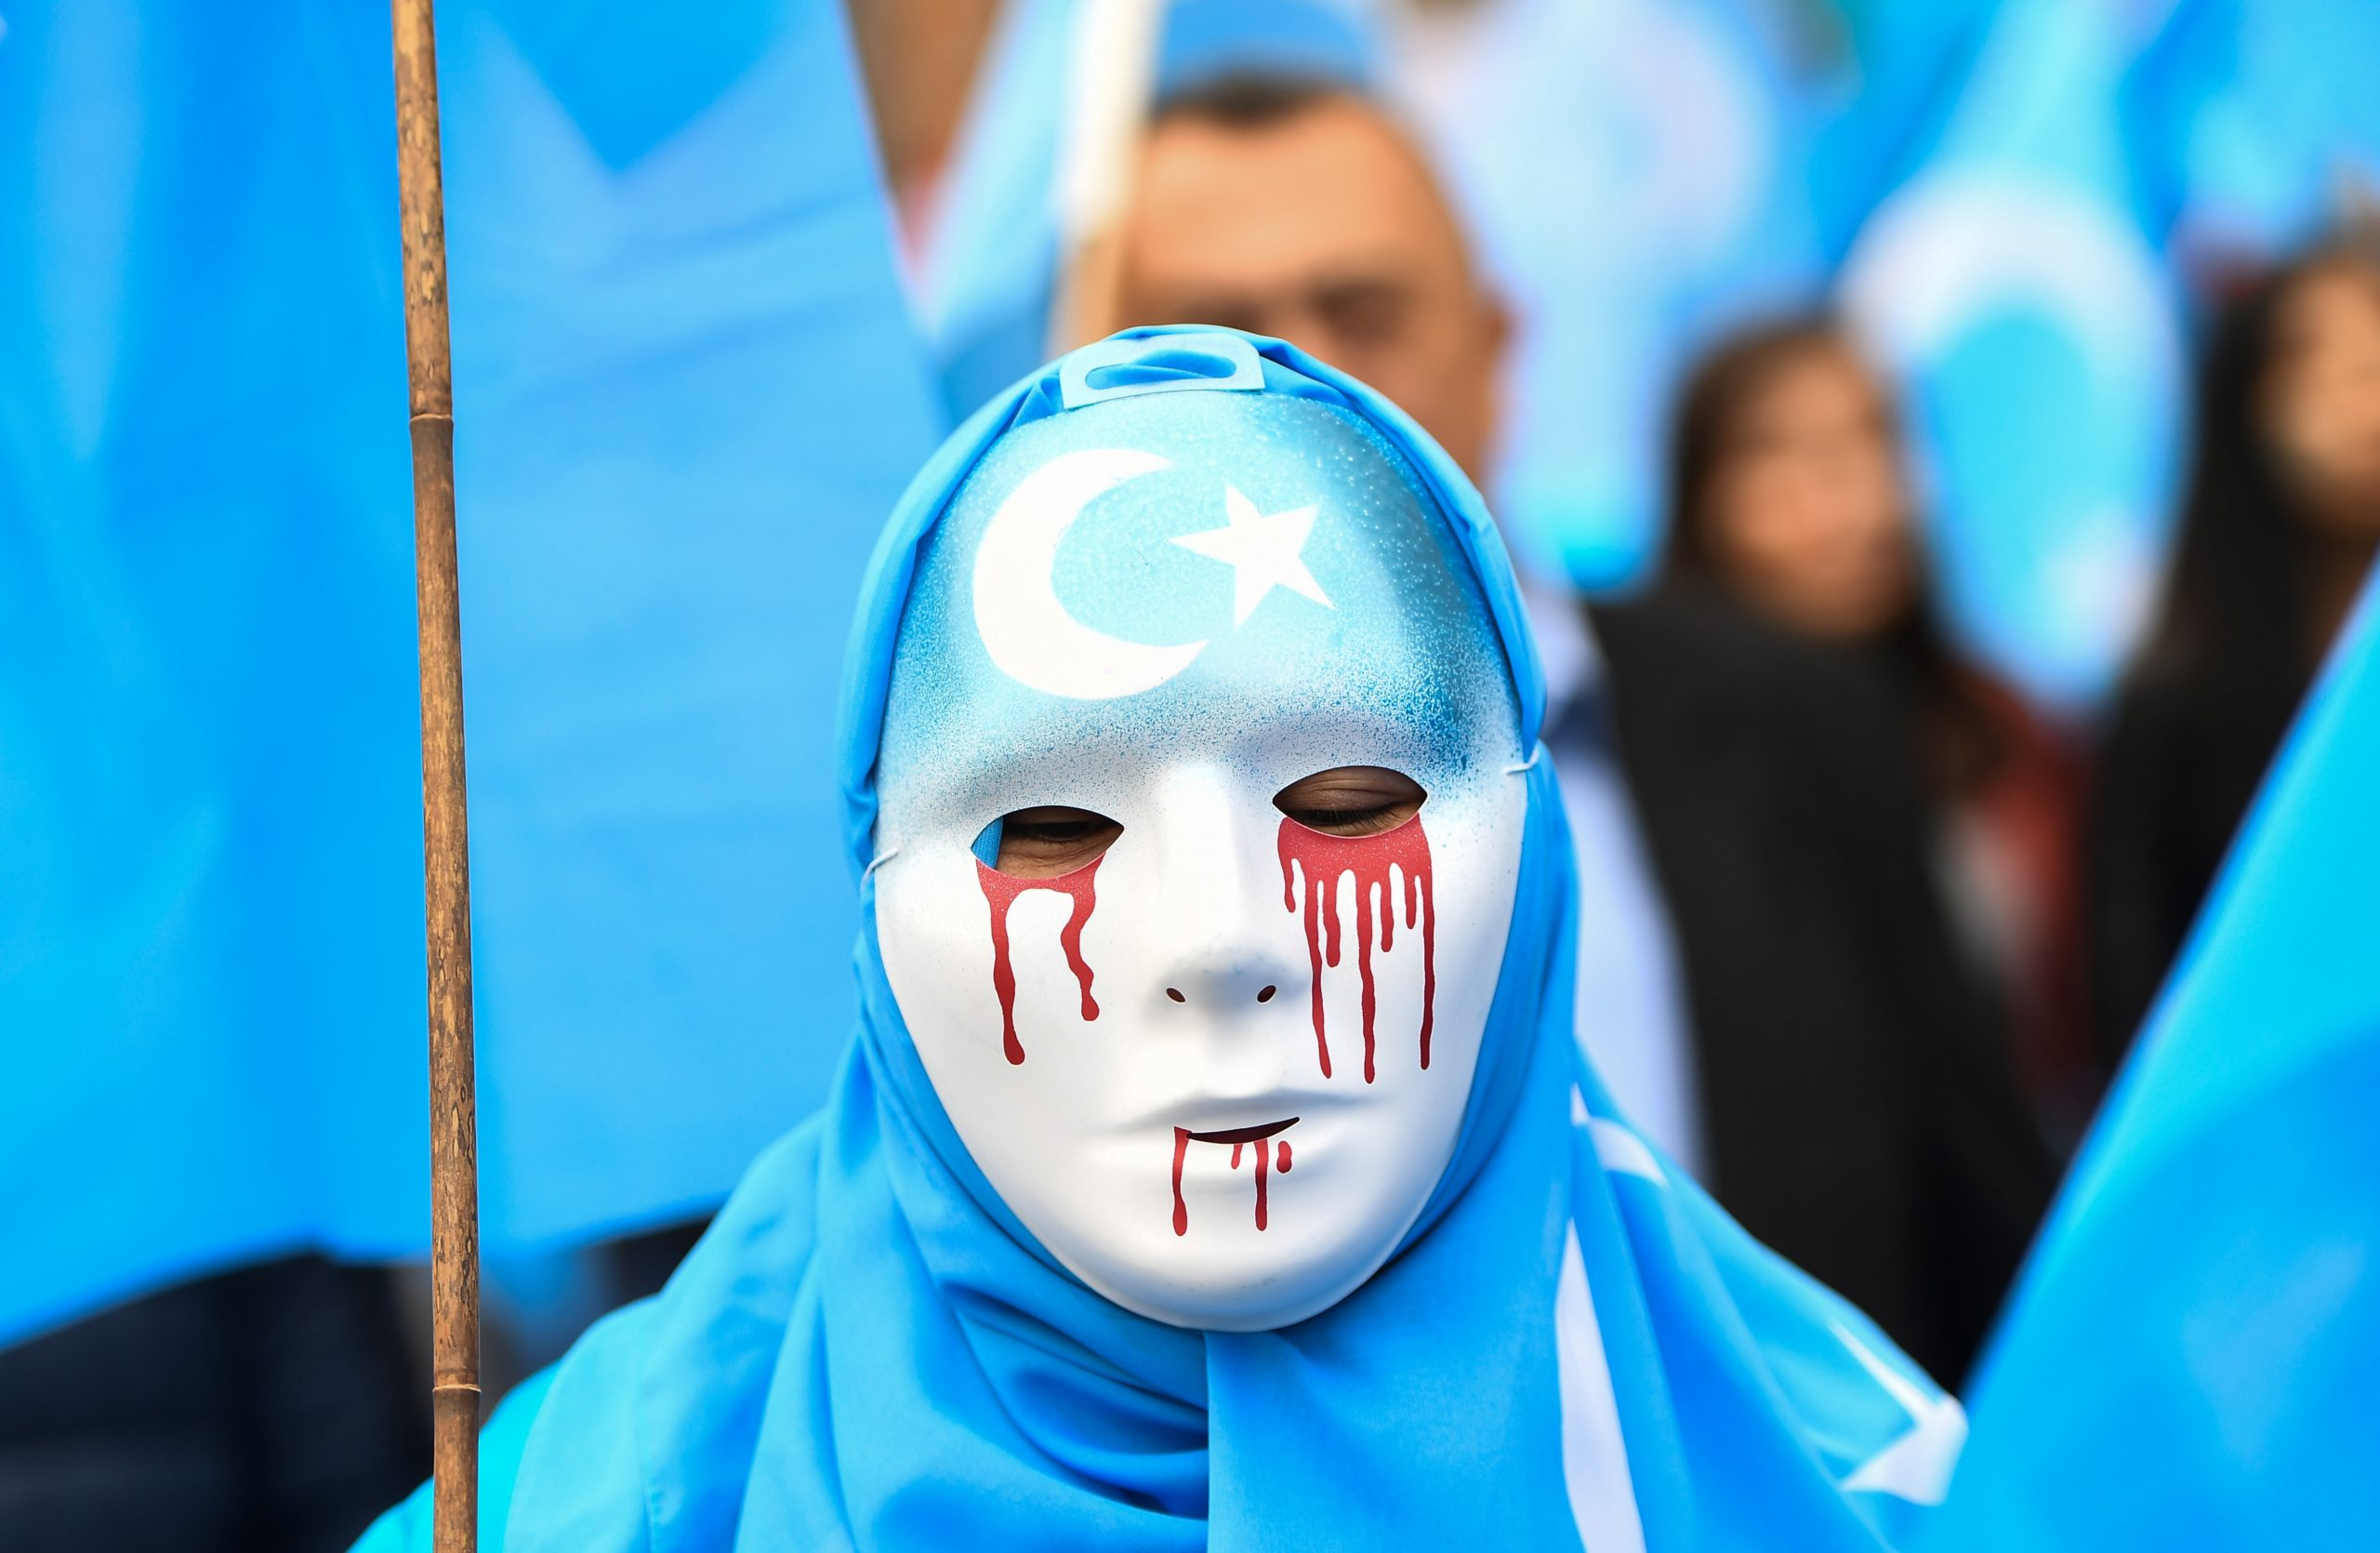 """TOPSHOT - A person wearing a white mask with tears of blood takes part in a protest march of ethnic Uighurs asking for the European Union to call upon China to respect human rights in the Chinese Xinjiang region and ask for the closure of """"re-education center"""" where Uighurs are detained, during a demonstration around the EU institutions in Brussels on April 27, 2018. (Photo by Emmanuel DUNAND / AFP) (Photo by EMMANUEL DUNAND/AFP via Getty Images)"""